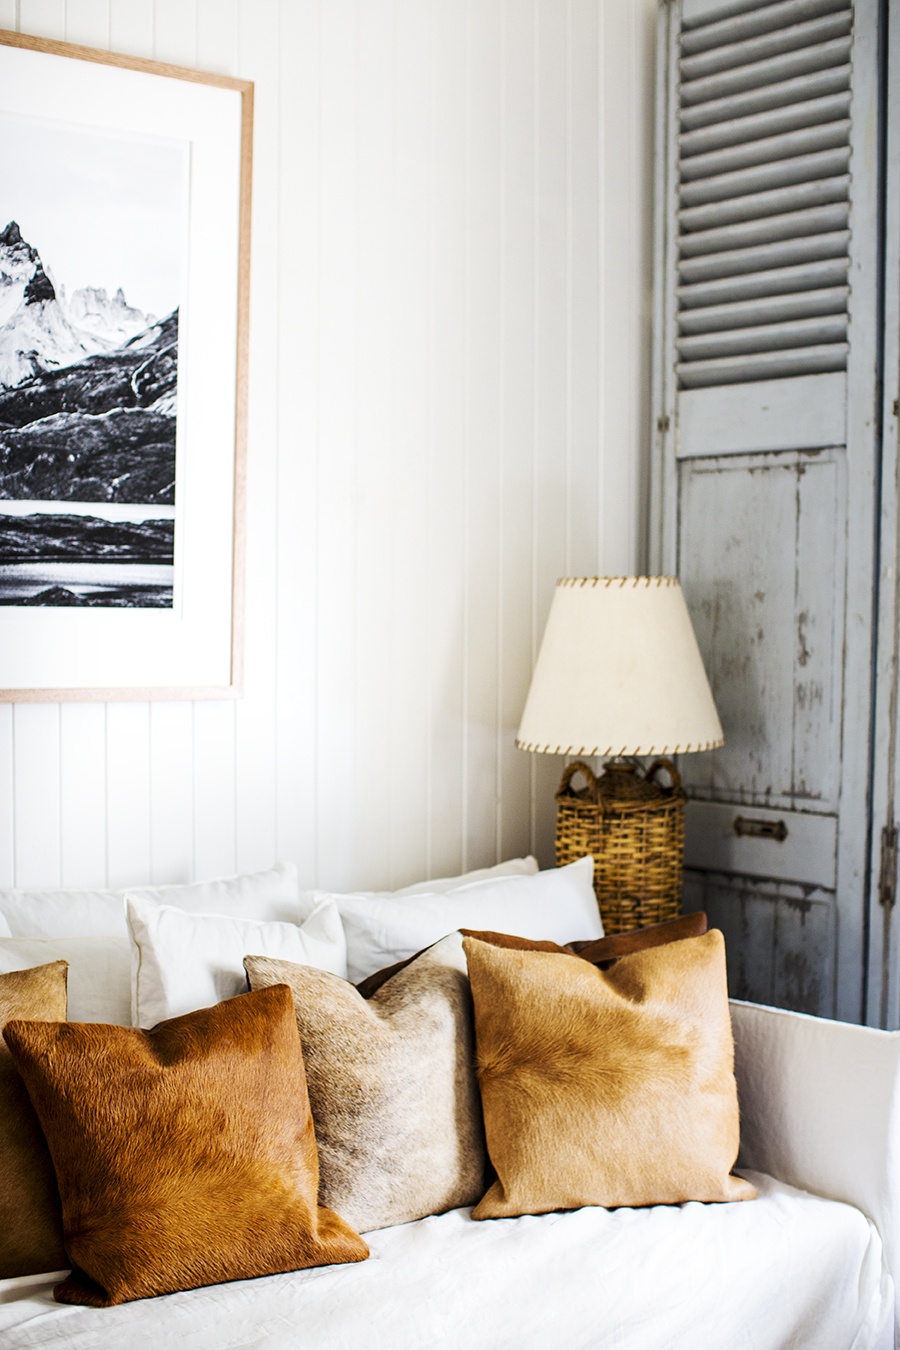 Rustic Bohemian Living Room Interior Design by Kara Rosenlund with white sofa and cowhide pillows. #rusticdecor #livingroom #texture #beachy #vintagestyle #interiordesign